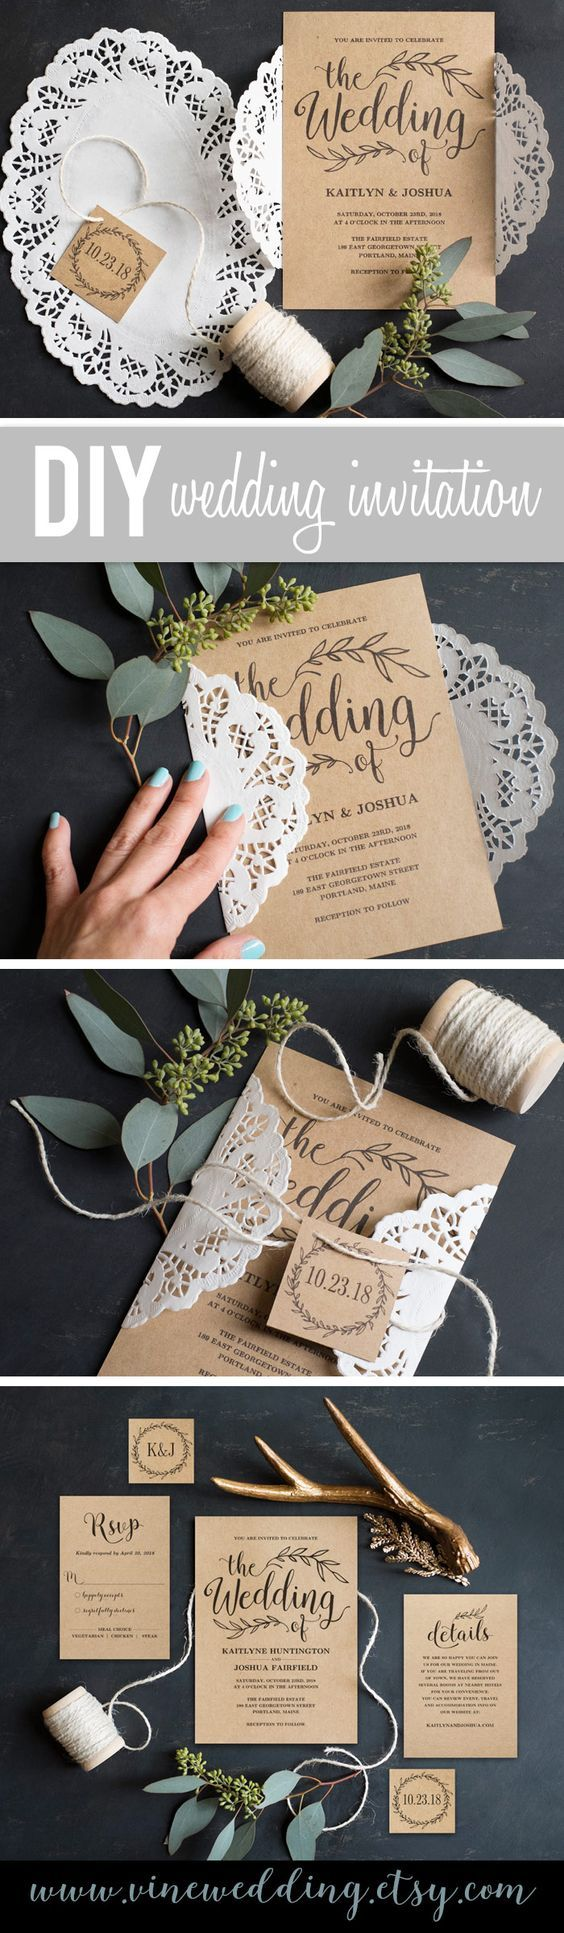 Diy Wedding Invitations Easy Stylish And Affordable For The Budget